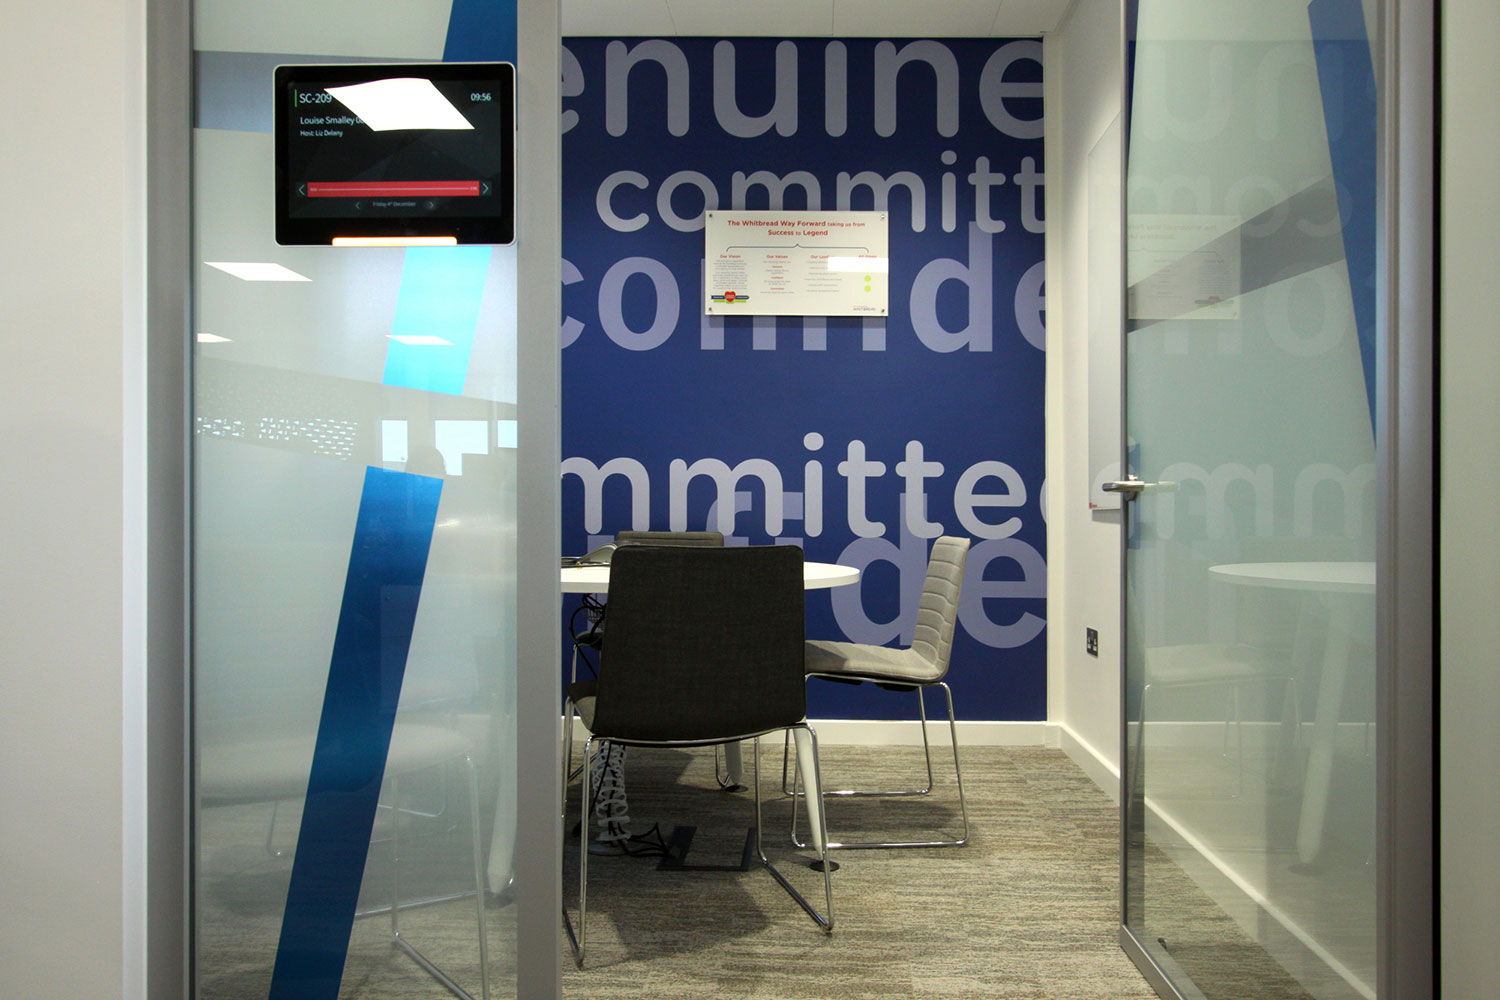 Whitbread Dunstable Meeting Room Booking System